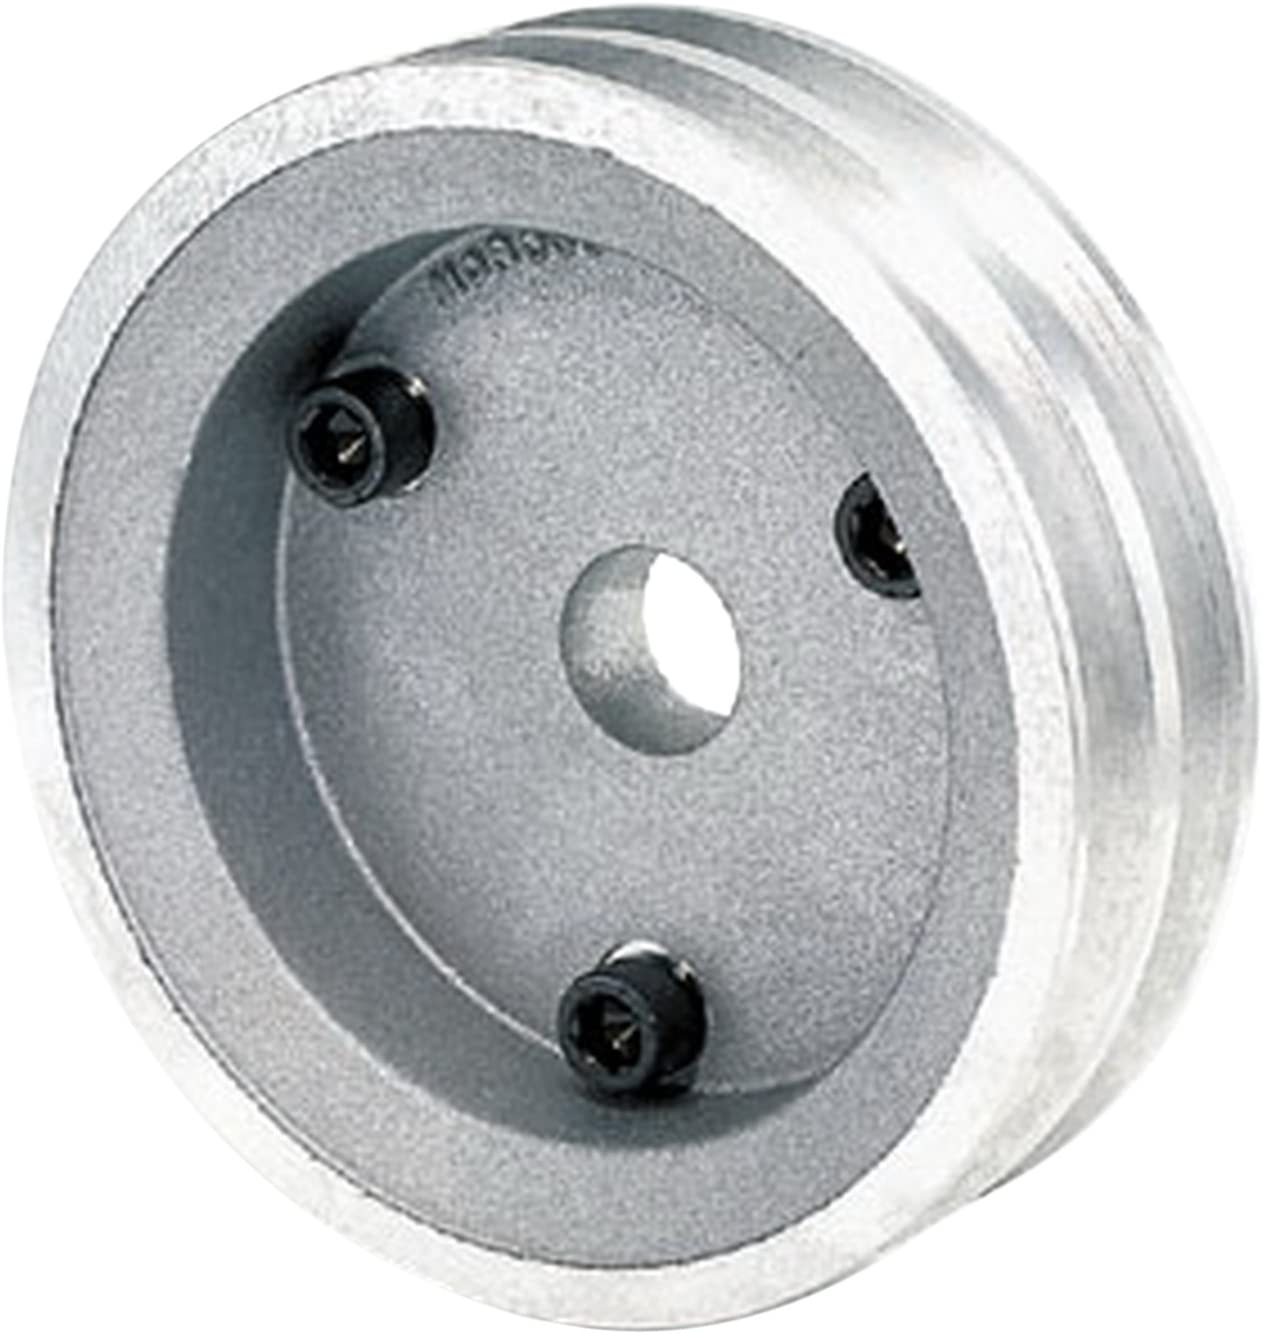 B000CON25O Moroso 64060 PULLEY,SBC DOUBLE GROOVE 71khHP175SL